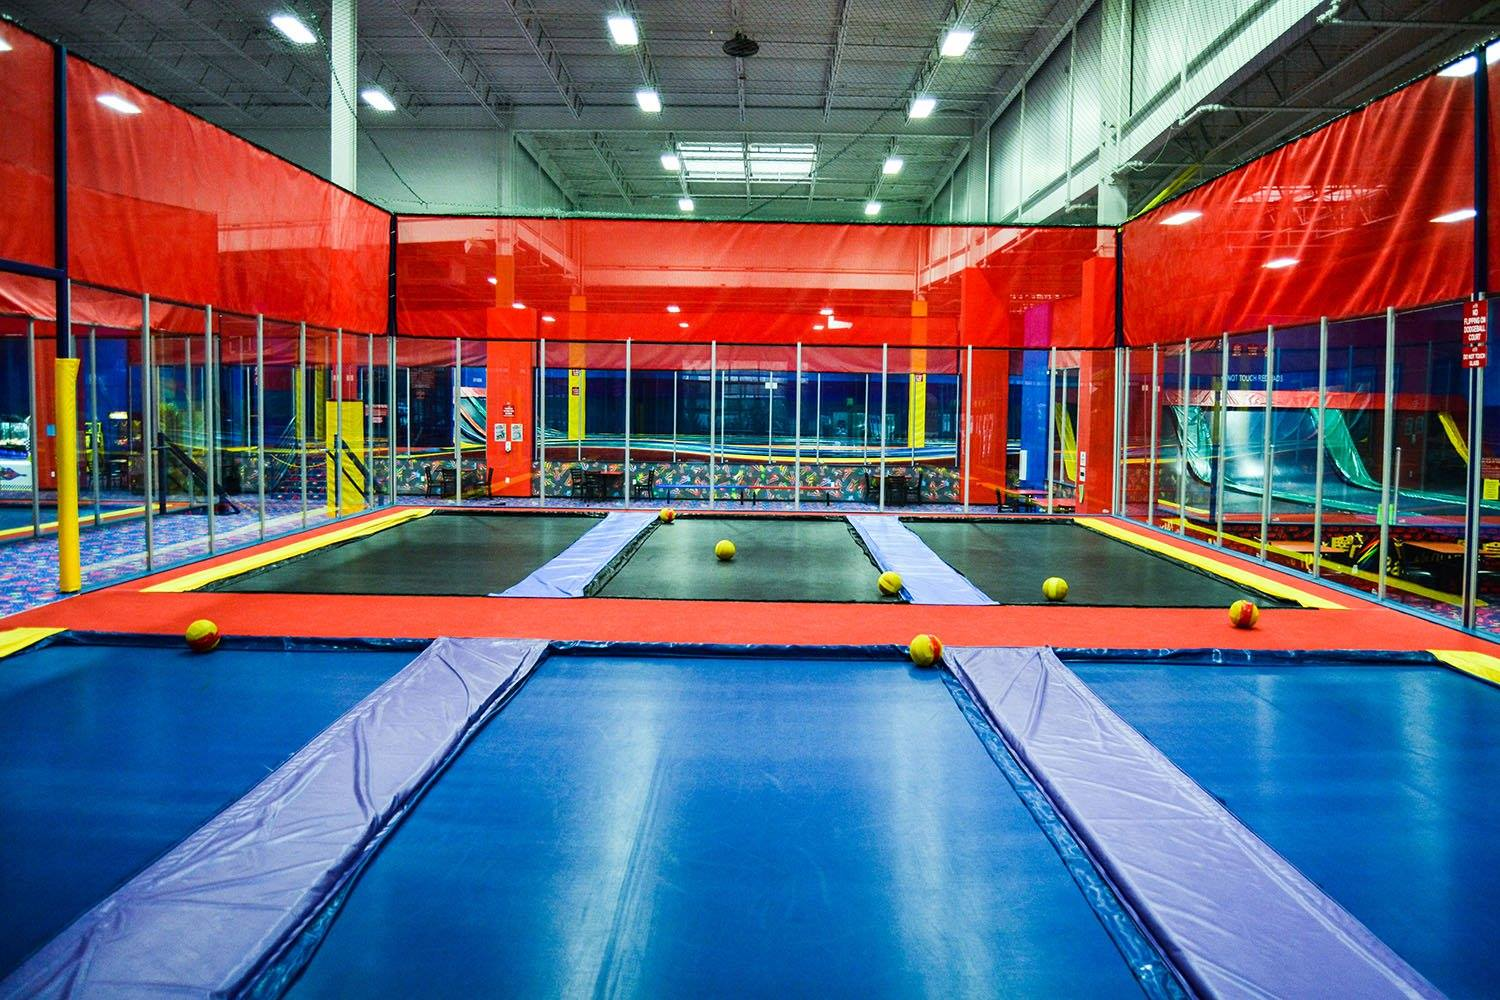 Jumpstreet Indoor Trampoline Park at Colorado Mills Mall in Lakewood